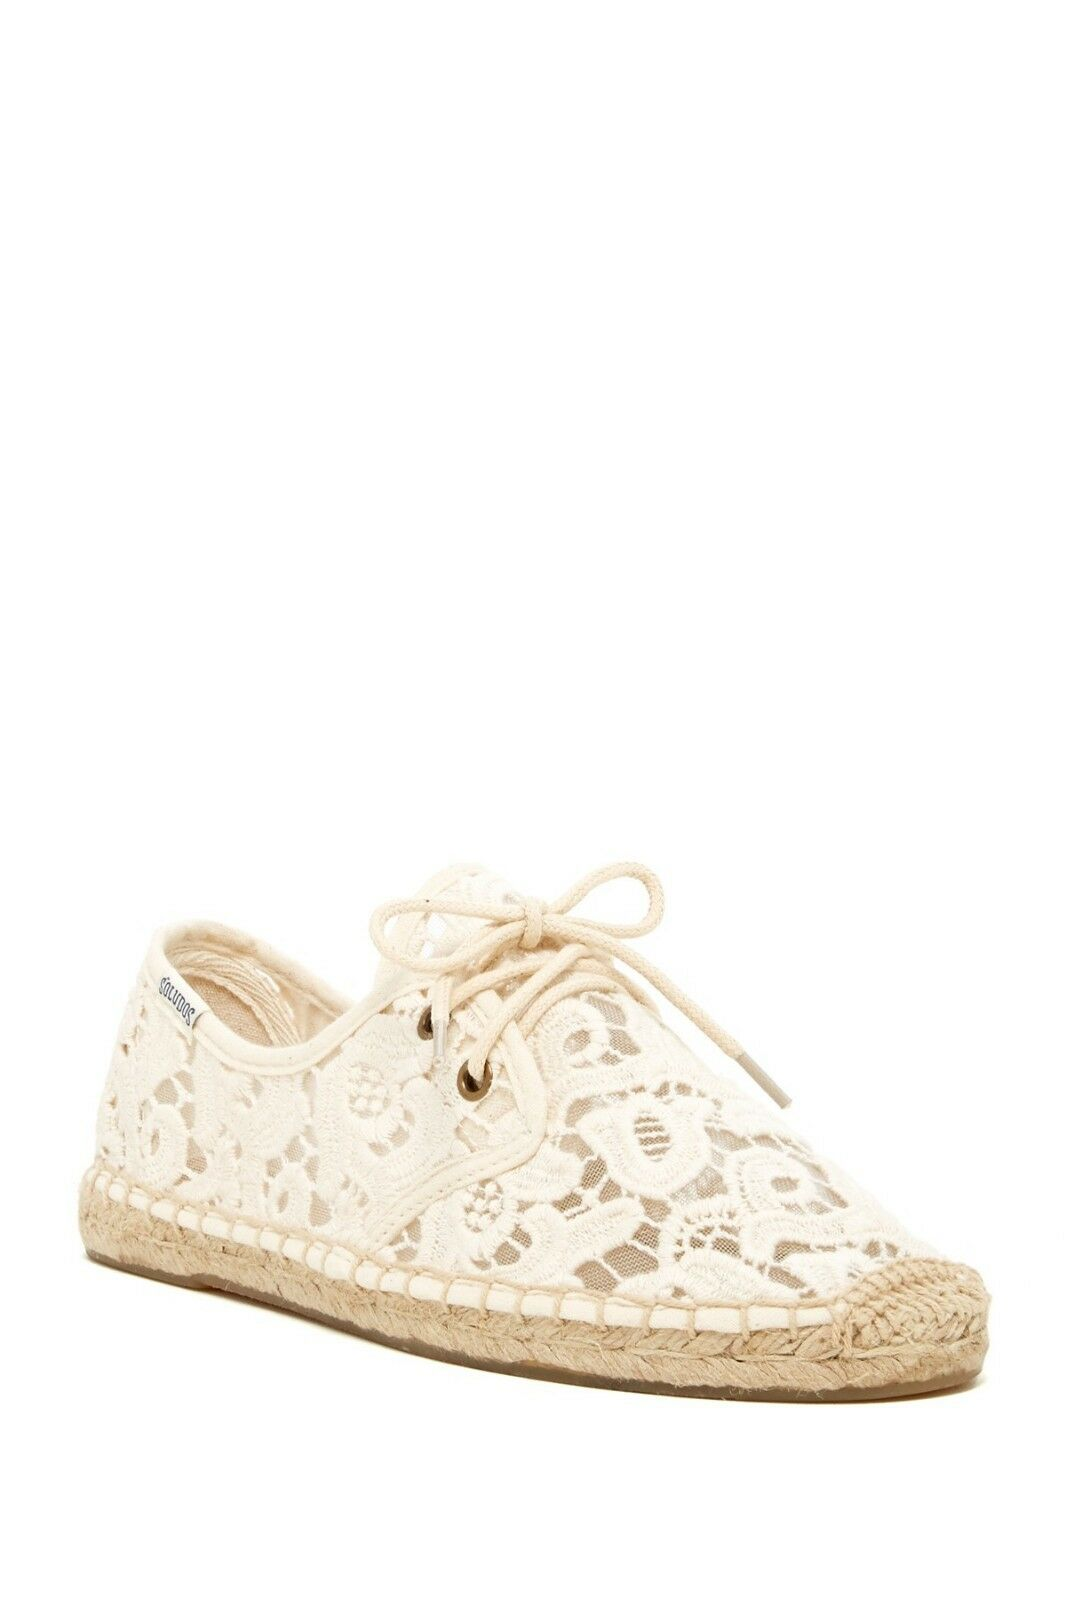 Soludos Womens NIB Espadrille Lace Up Crochet Sneakers Flats 10 Ivory Tulip Lace